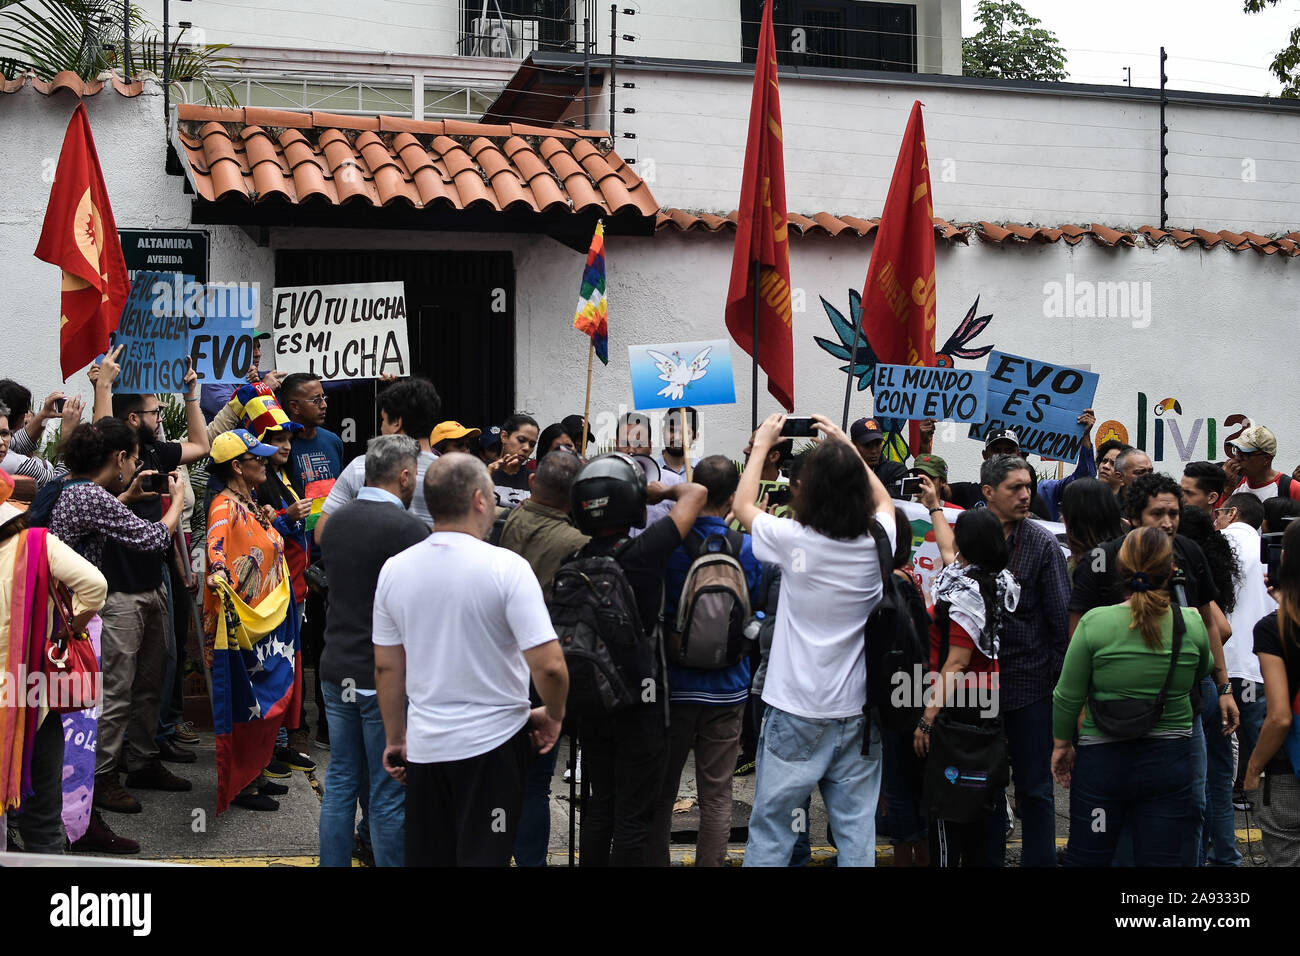 Crowd of supporters at the Bolivian embassy during the protest.Supporters of social movements and Venezuelan communist youth protest in support of former president, Evo Morales in front of the Bolivian embassy. The president of the country resigned after strong protests against his re-election and for refusing to conduct an audit of votes. Stock Photo